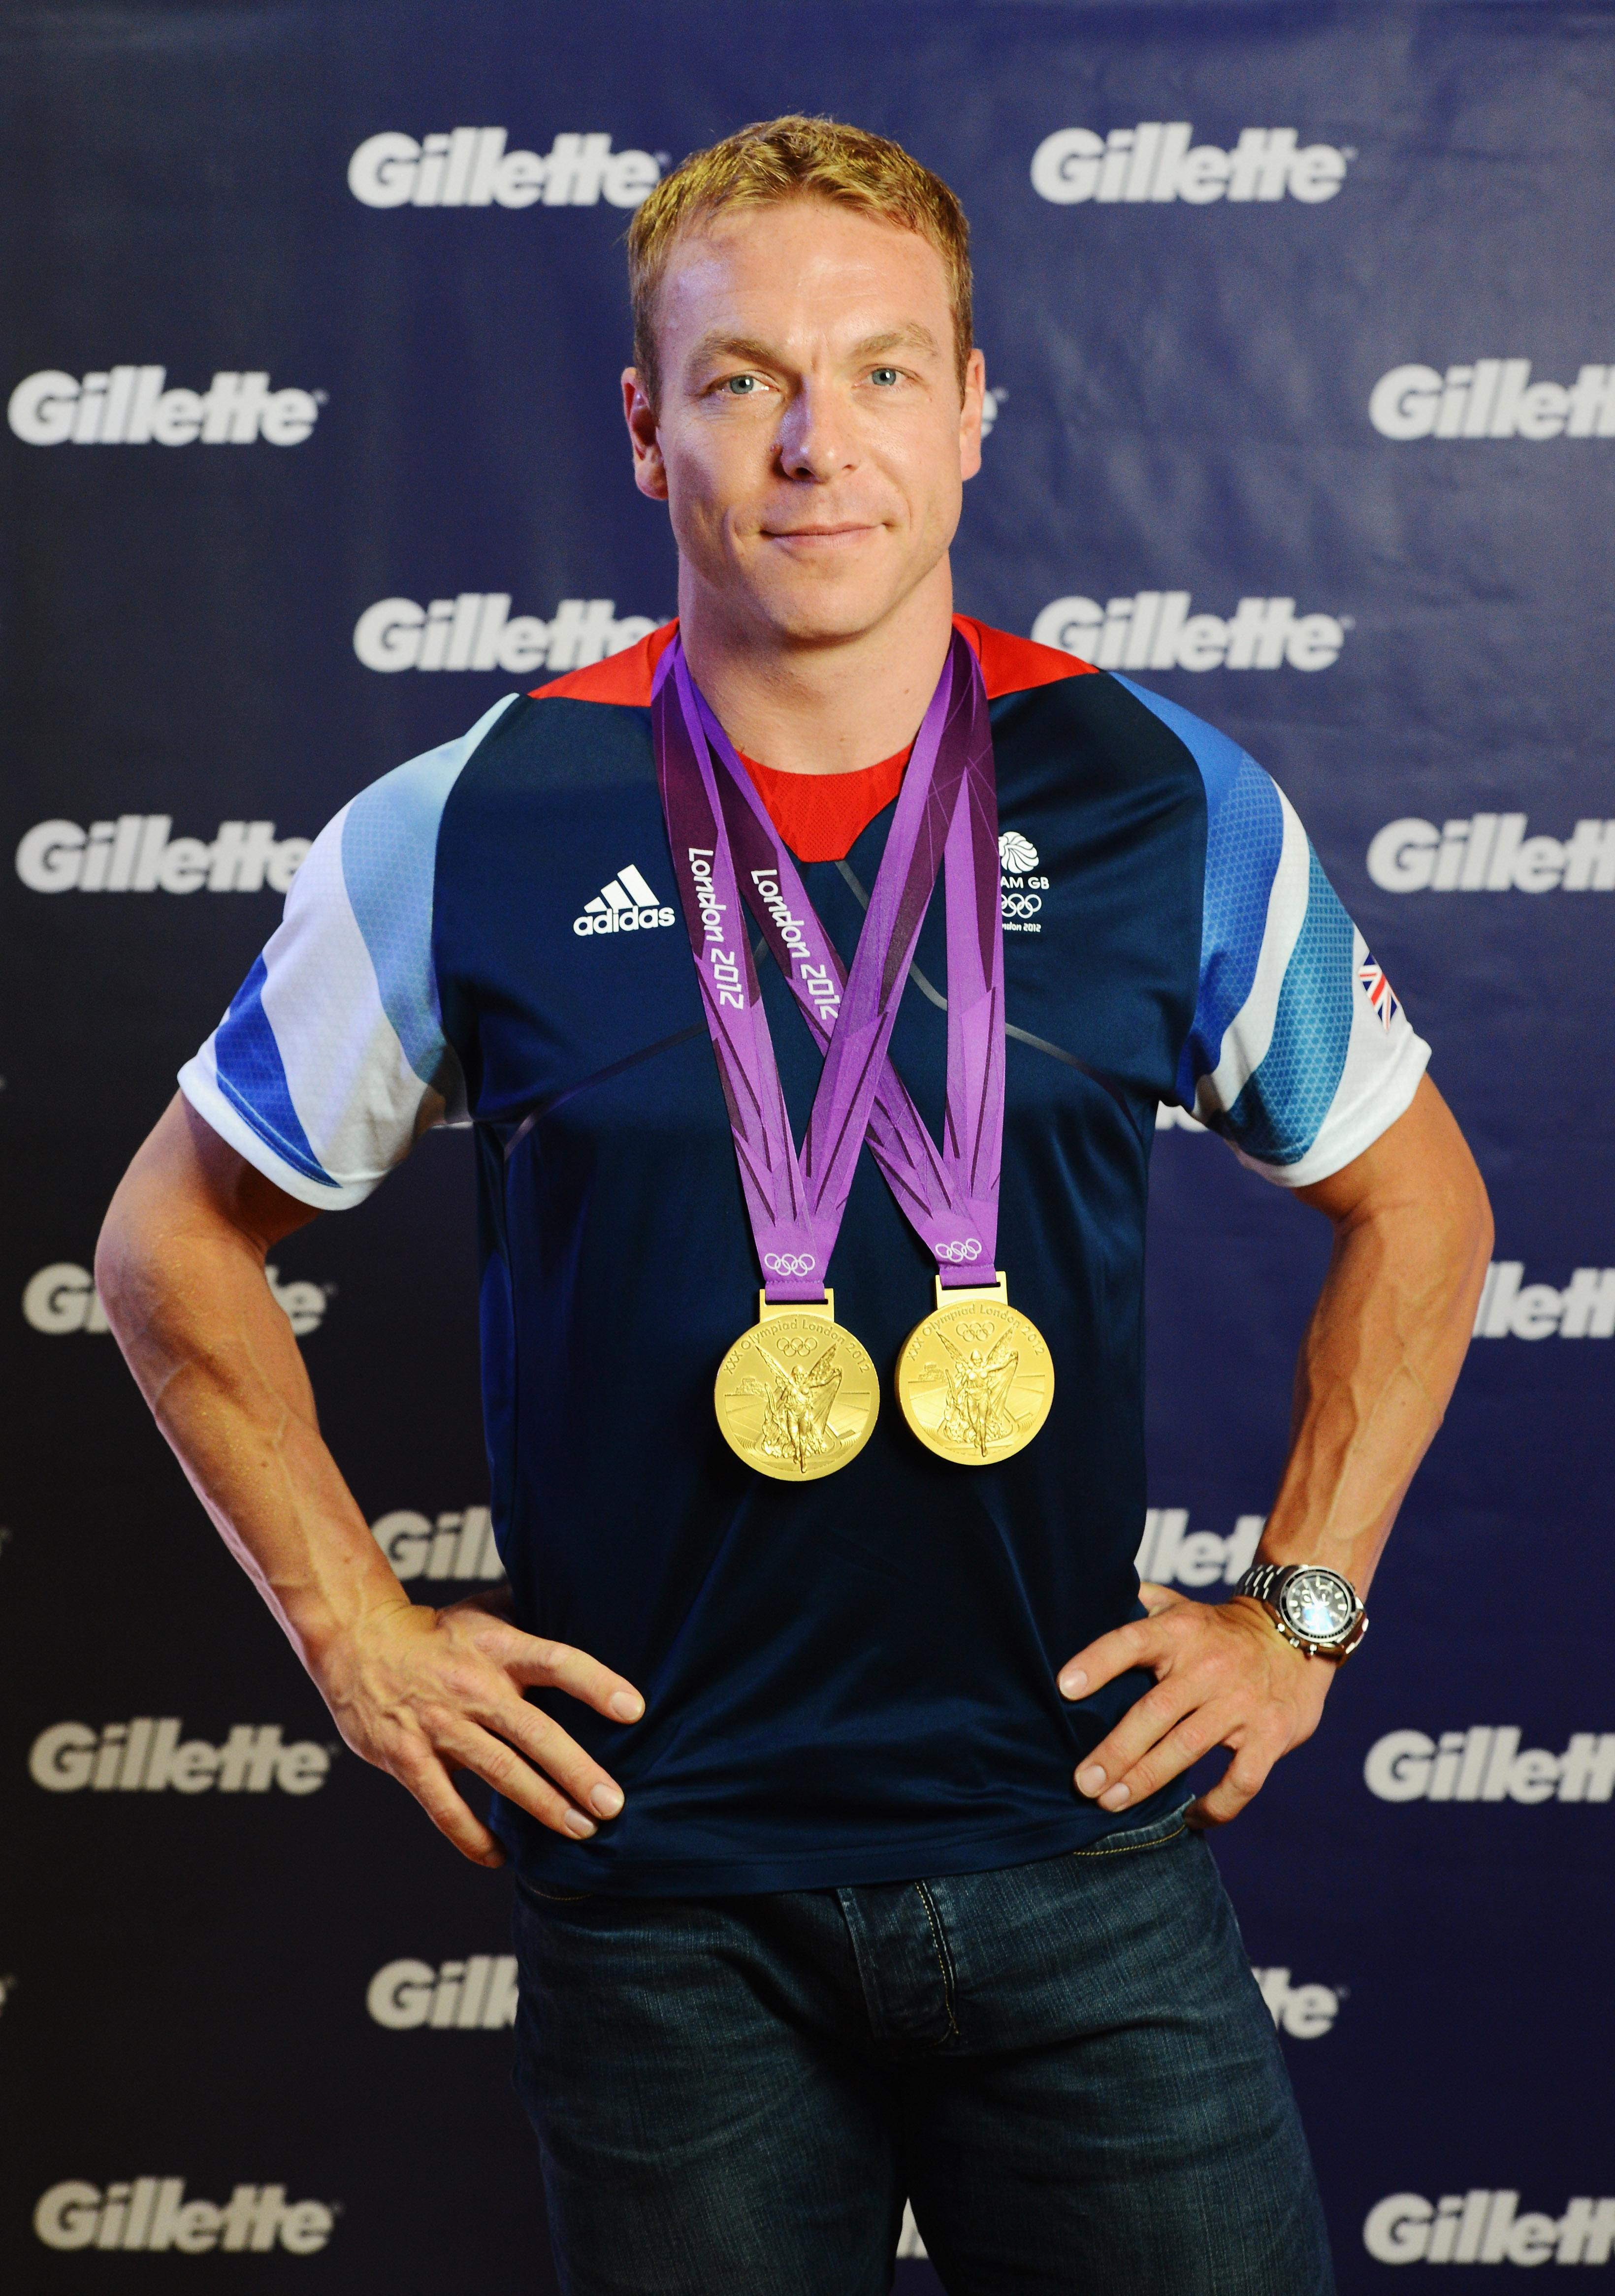 Sir Chris Hoy, 42, said both sides need to have a better understanding of each other and be more considerate